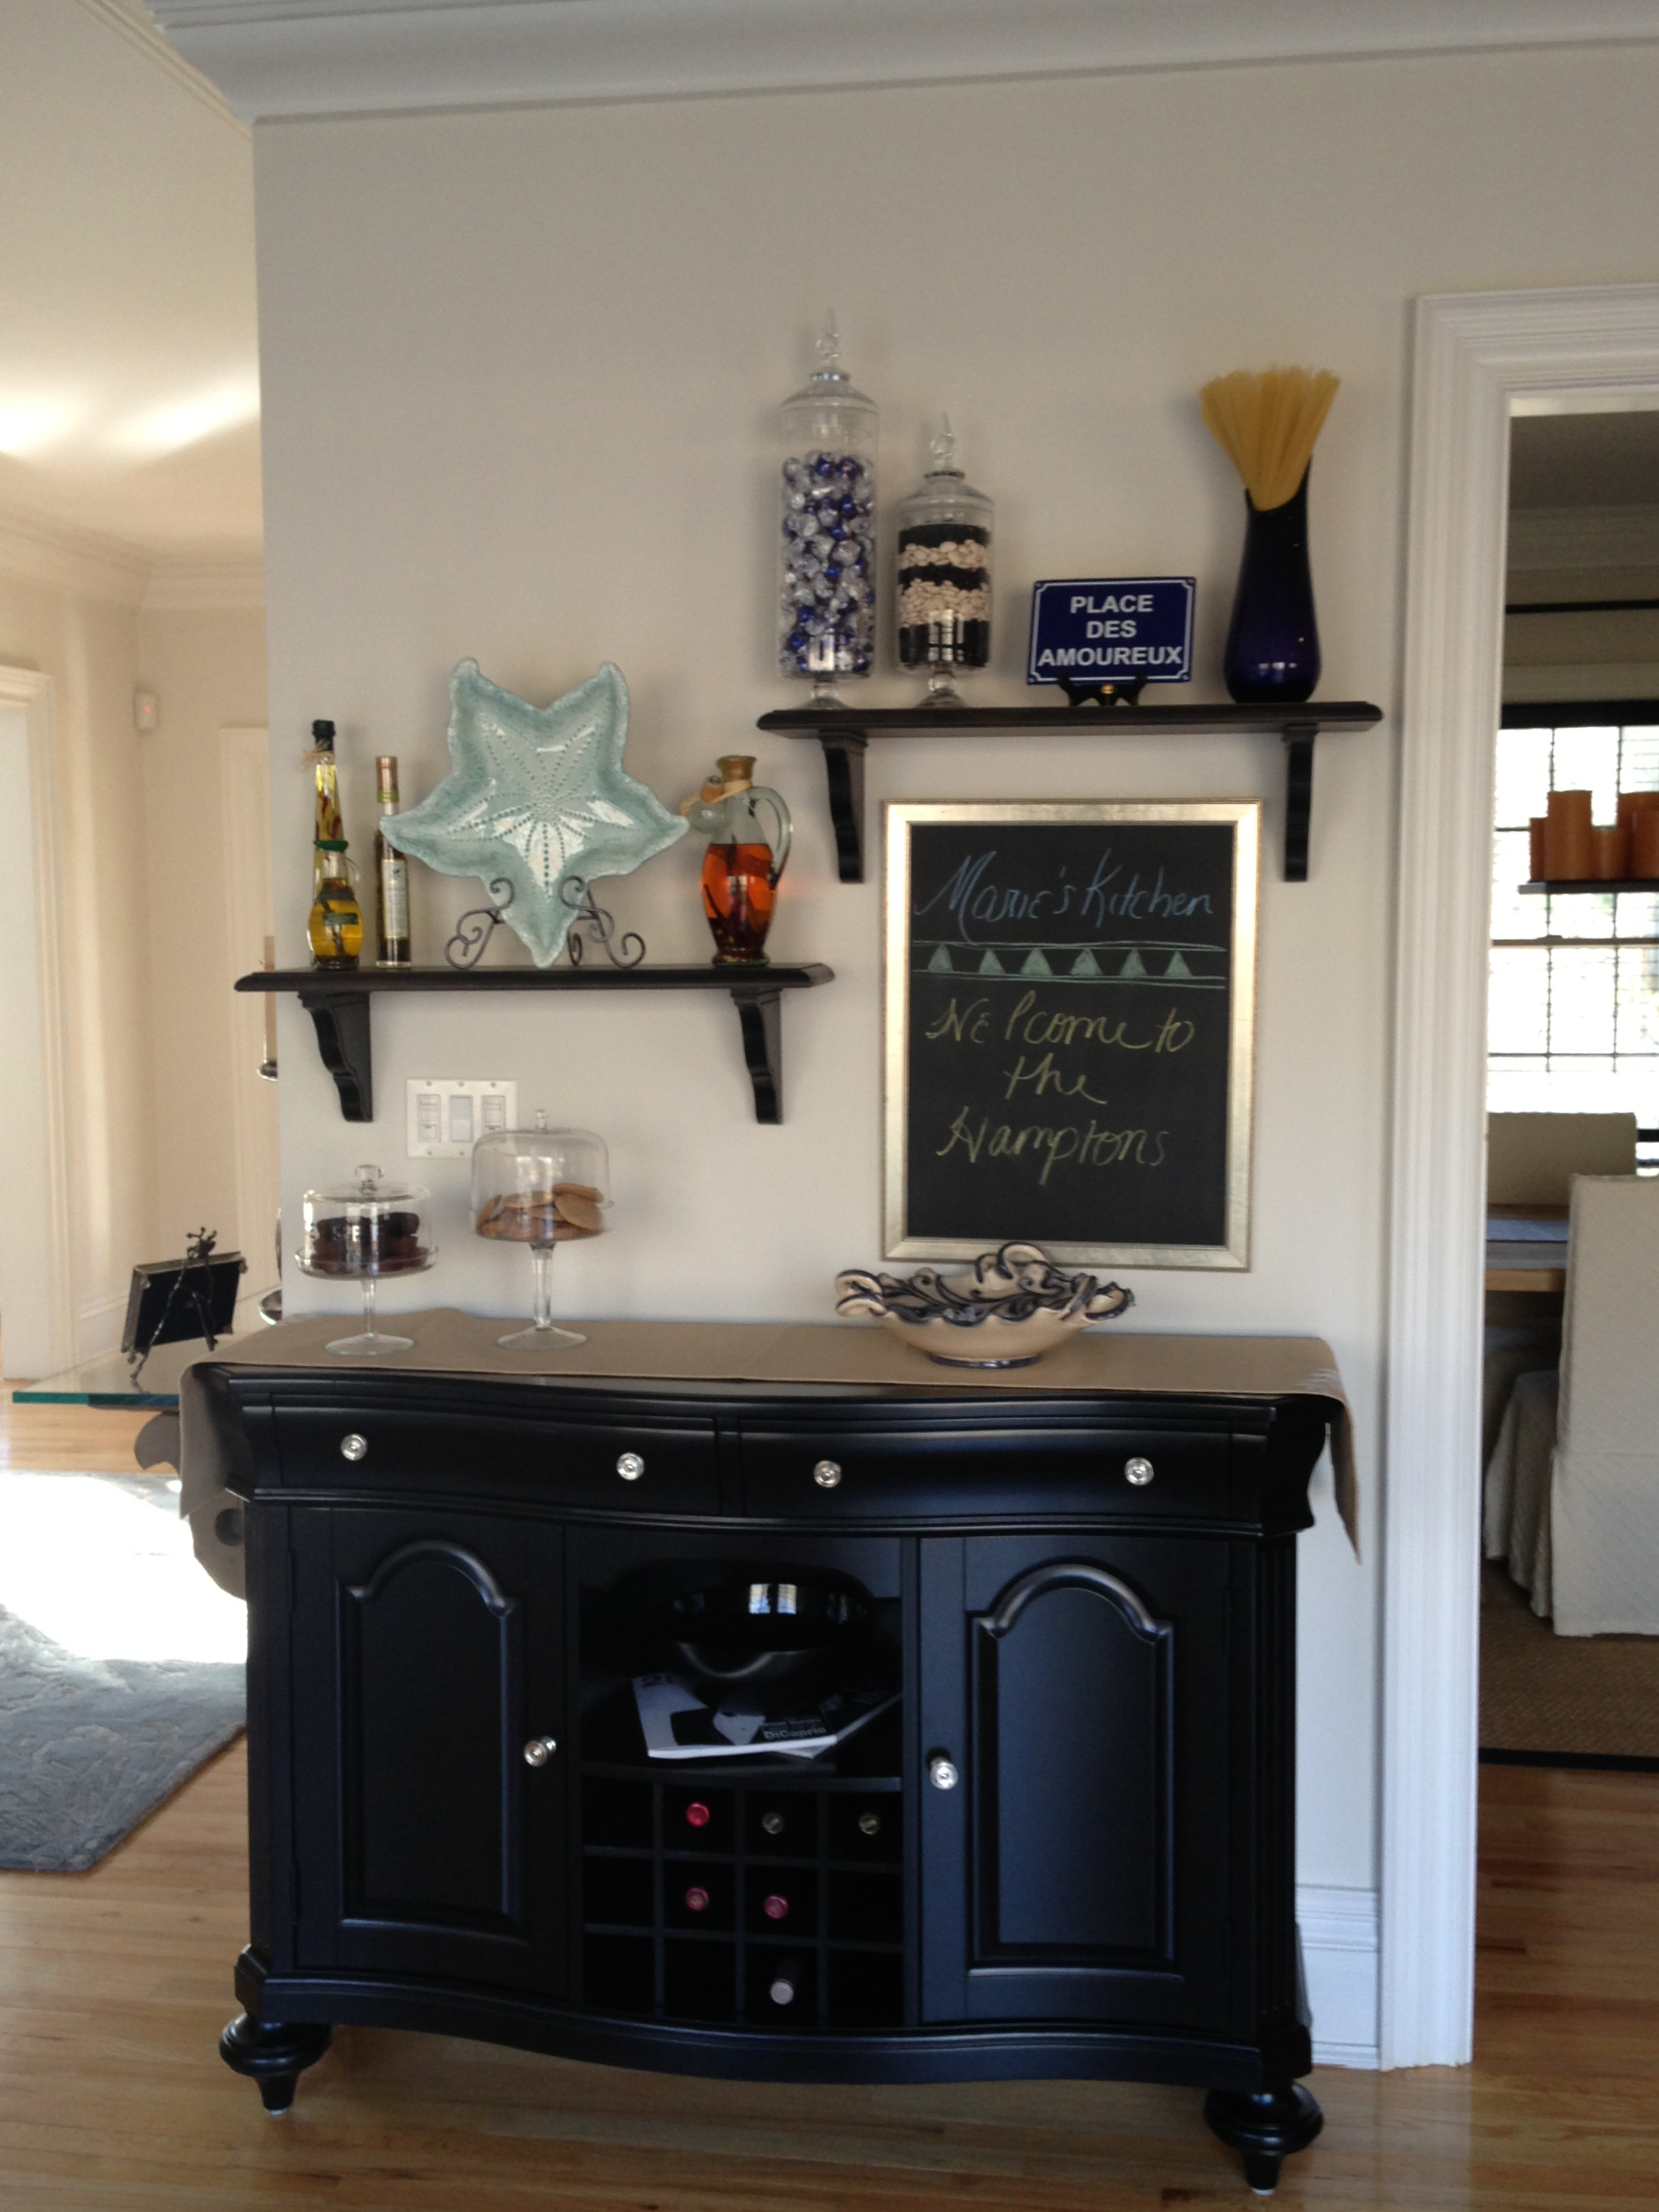 Black wooden cabinet and decorations on the wall